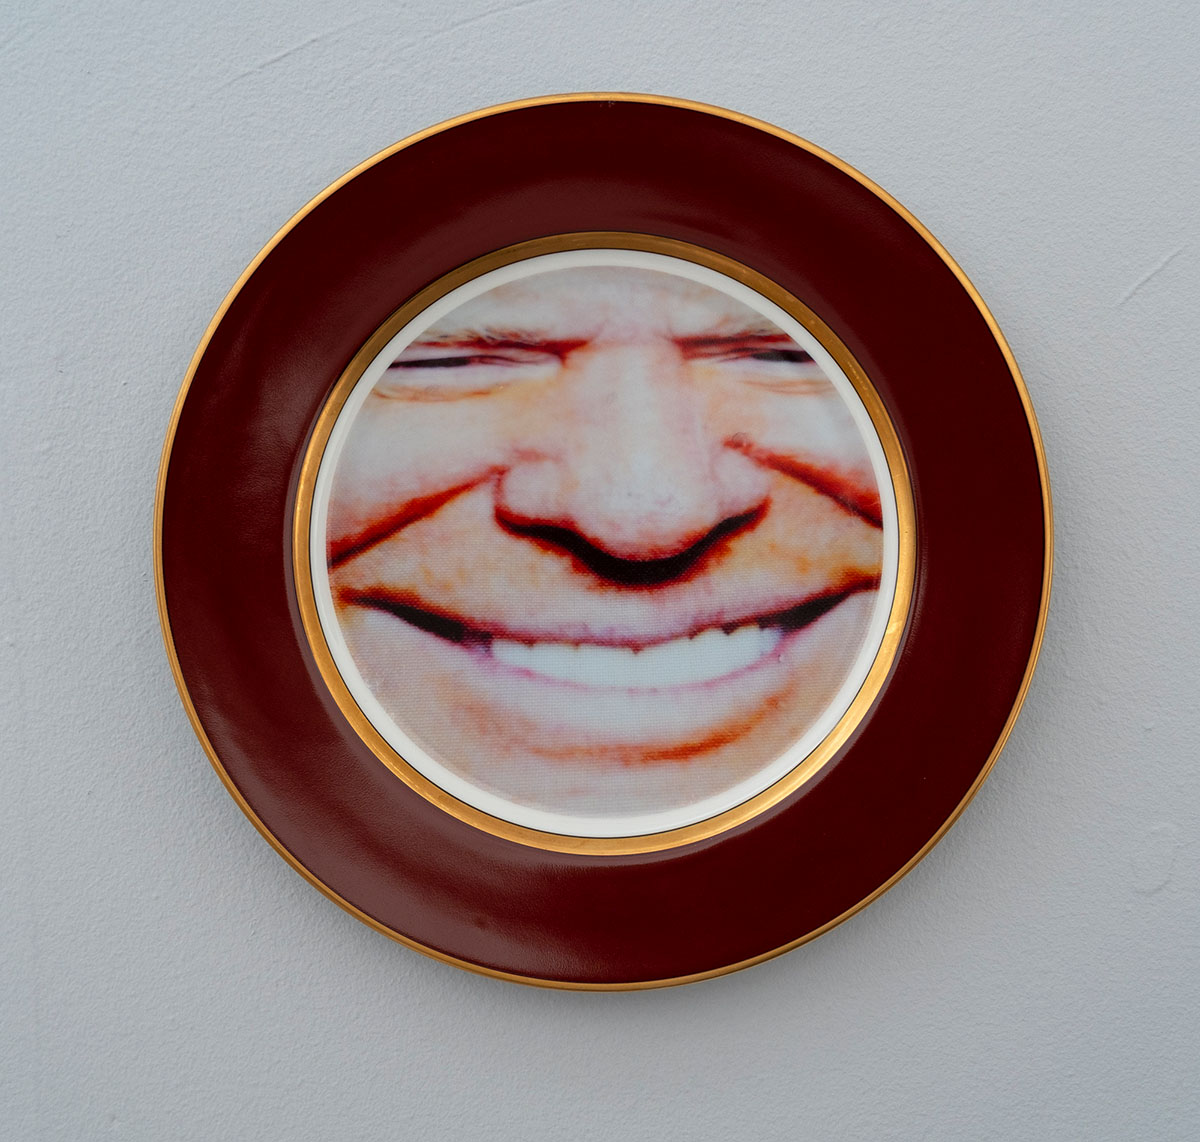 Donald Trump, 2018; ceramic plate; 10.25 inch diameter.